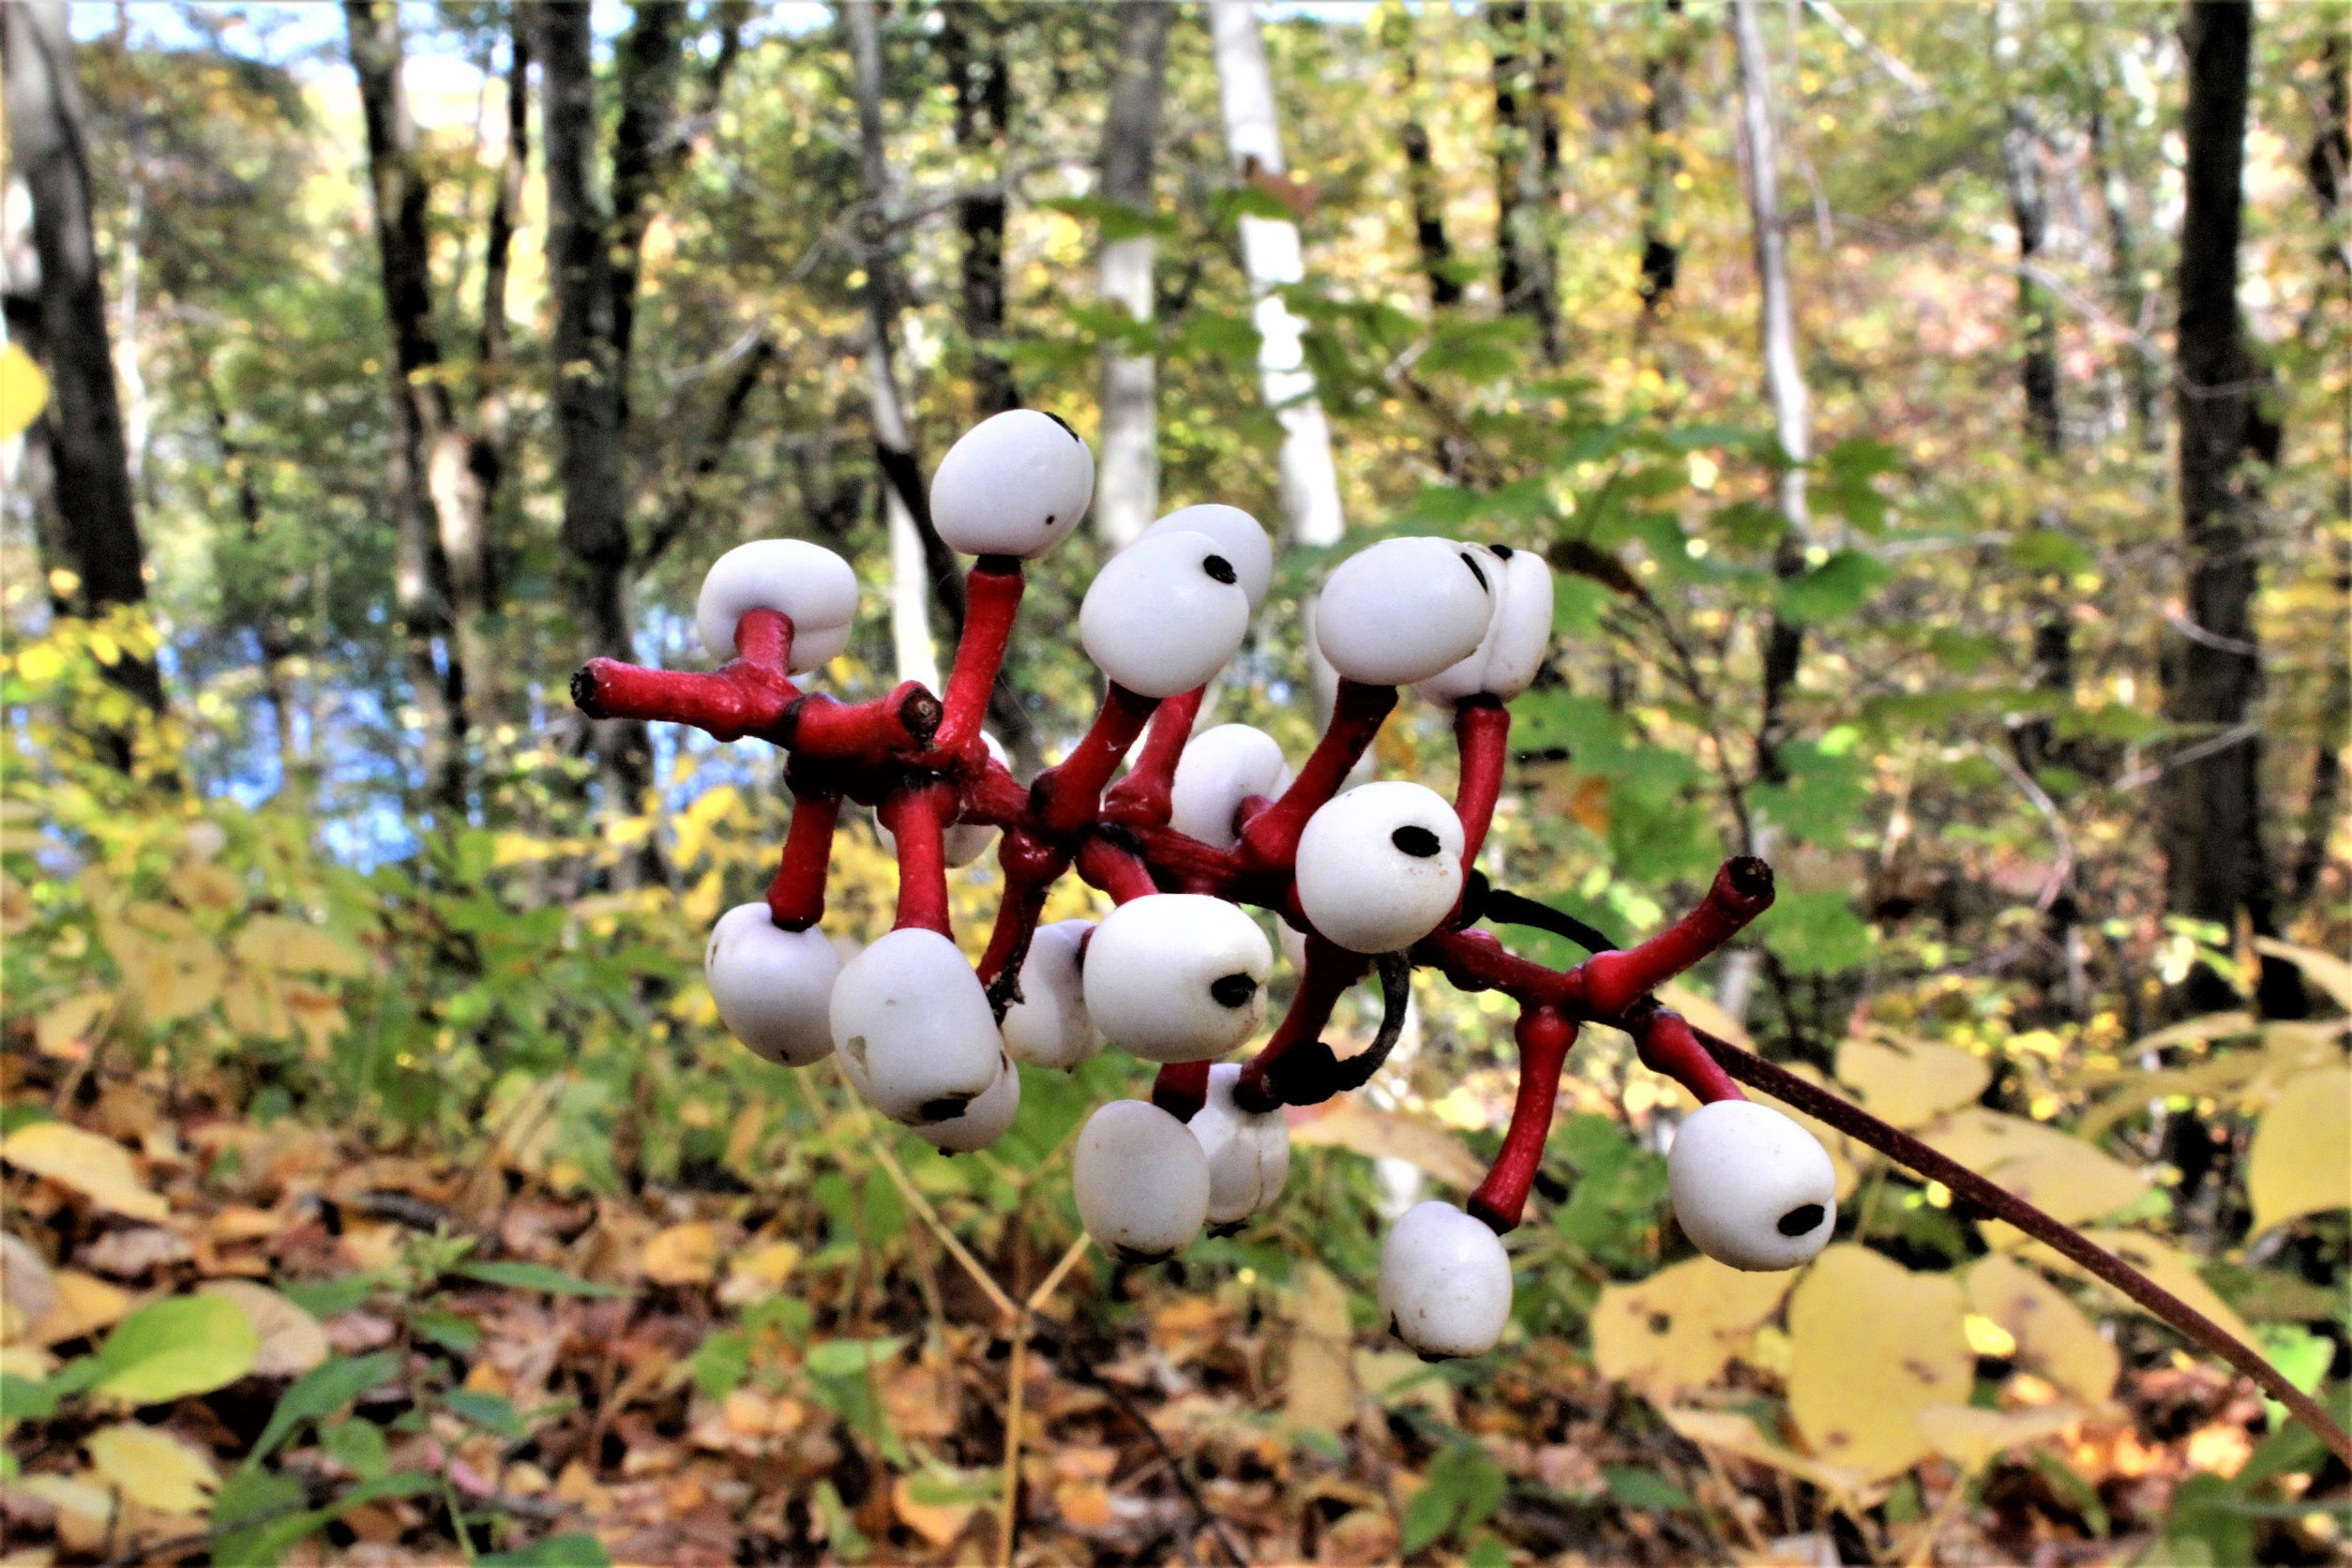 White berries with a black dot in the center, held to a central stem by bright red stalks.